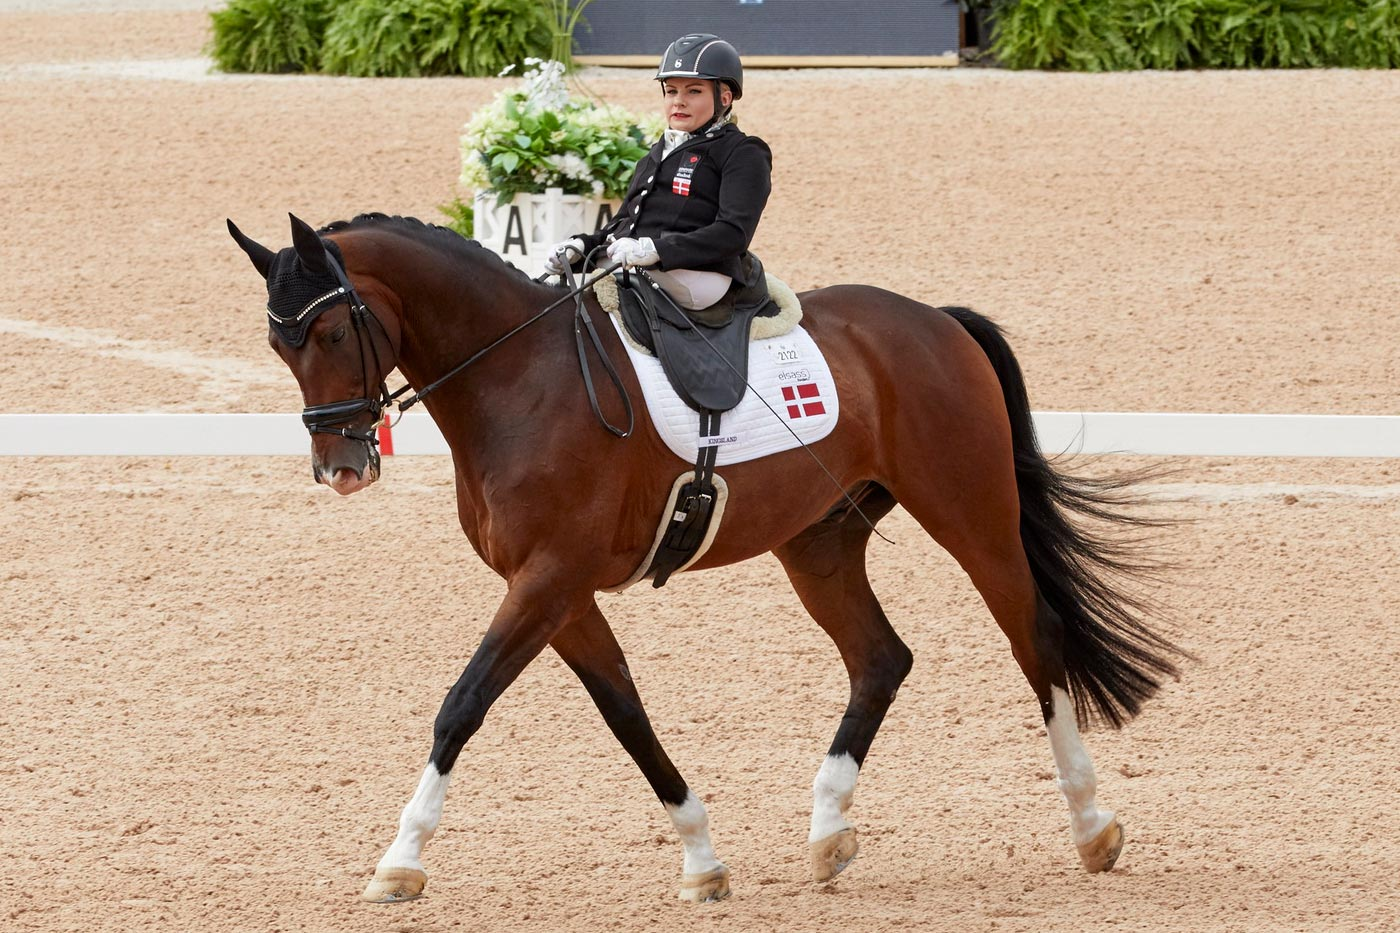 Denmark's Paralympian Stinna Tange Kaastrup with her mount Horsebo Smarties secures her first World Championship title at the FEI World Equestrian Games™ Tryon 2018. (FEI / Liz Gregg)